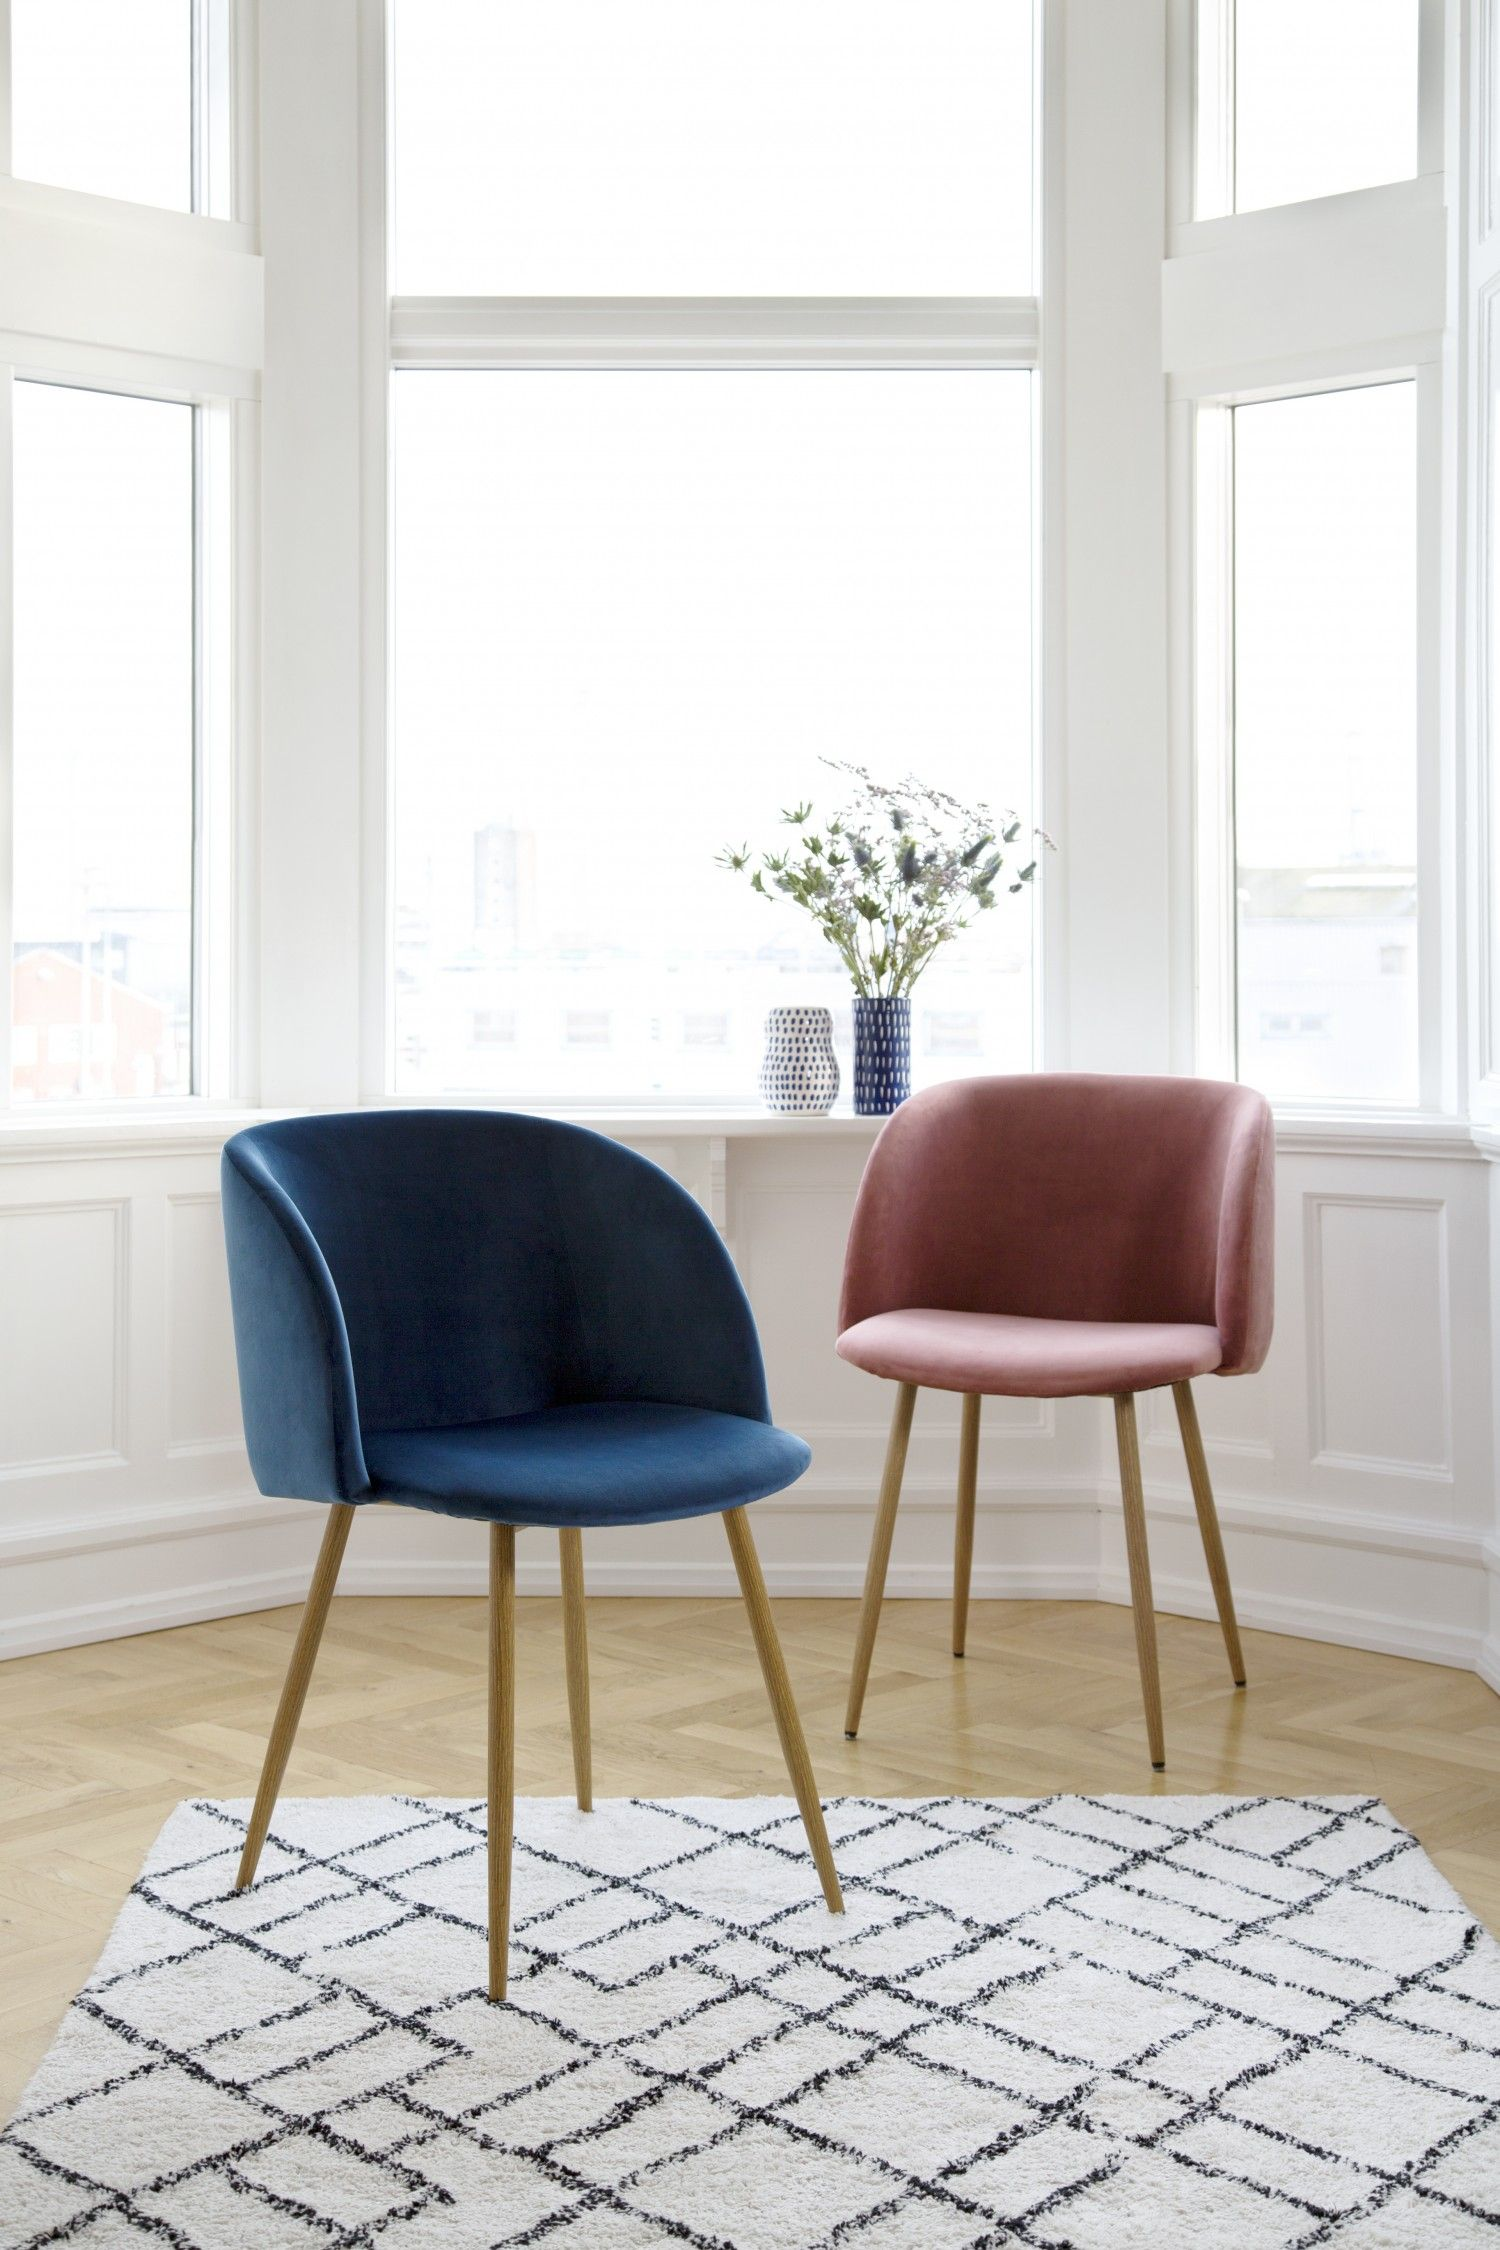 Table Basse Sostrene Grene Billedresultat For Søstrene Grene Lyserød Velour Stol